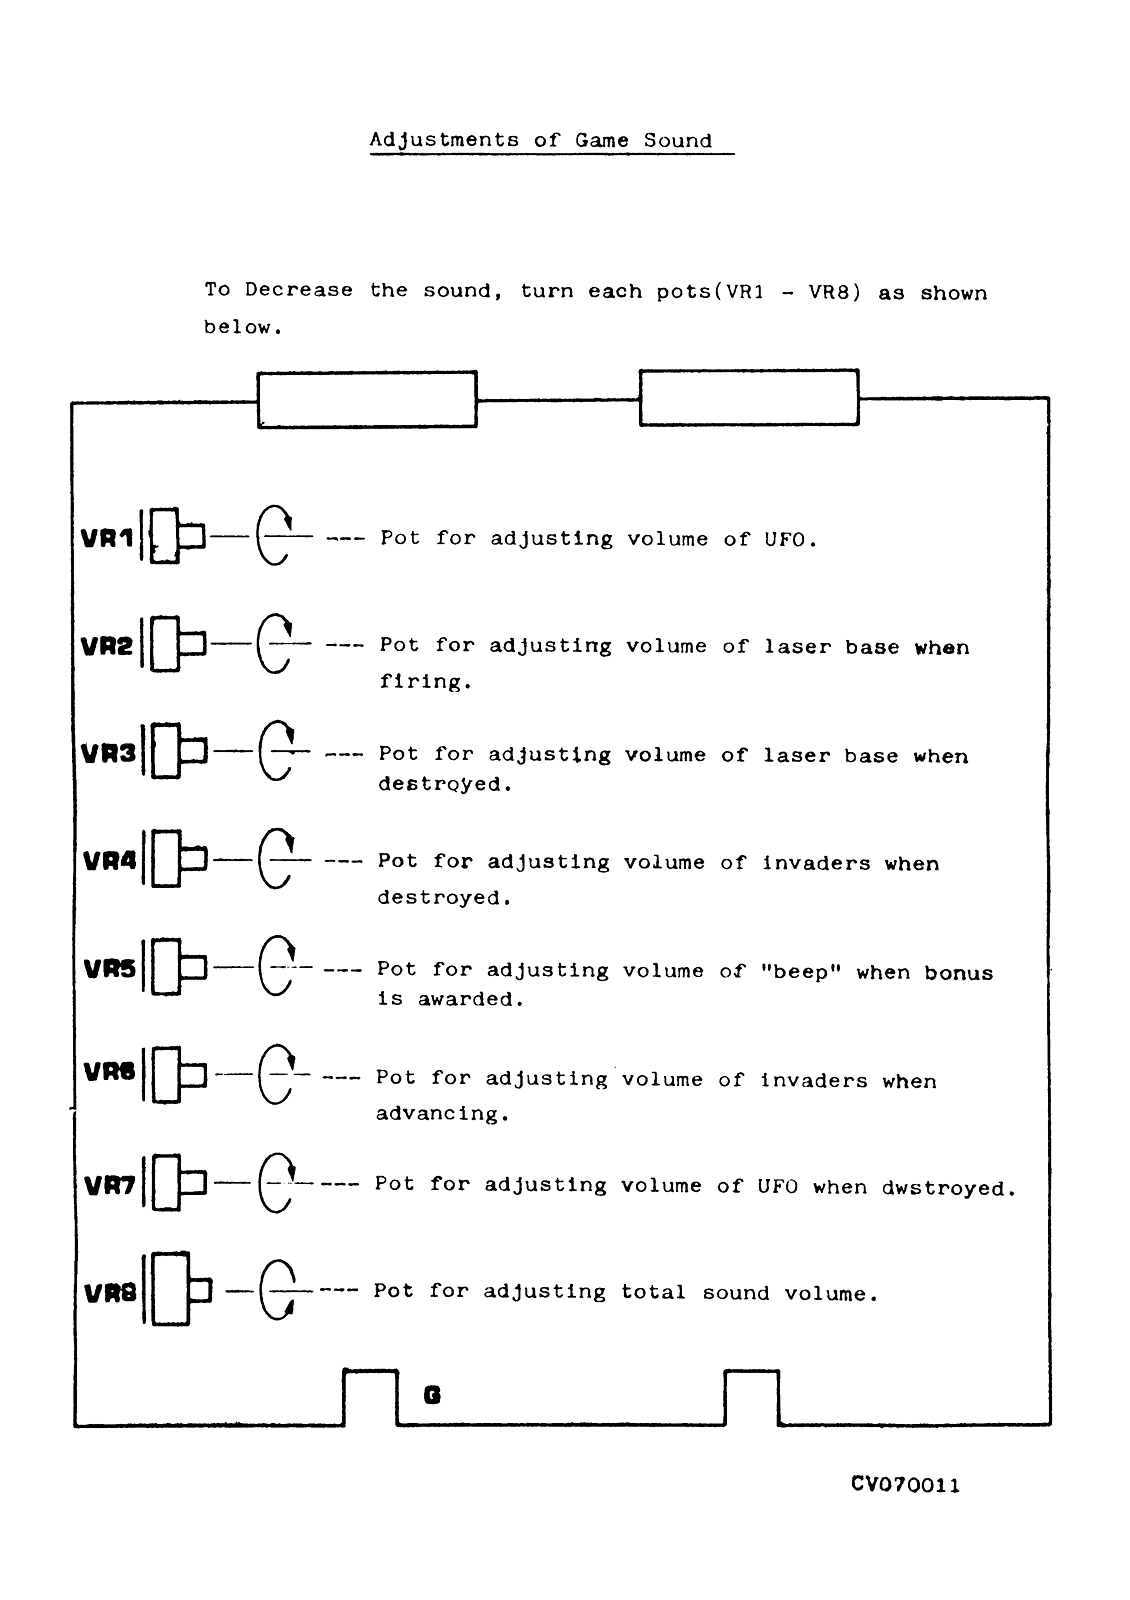 Space Invaders Part II sound adjustment instructions